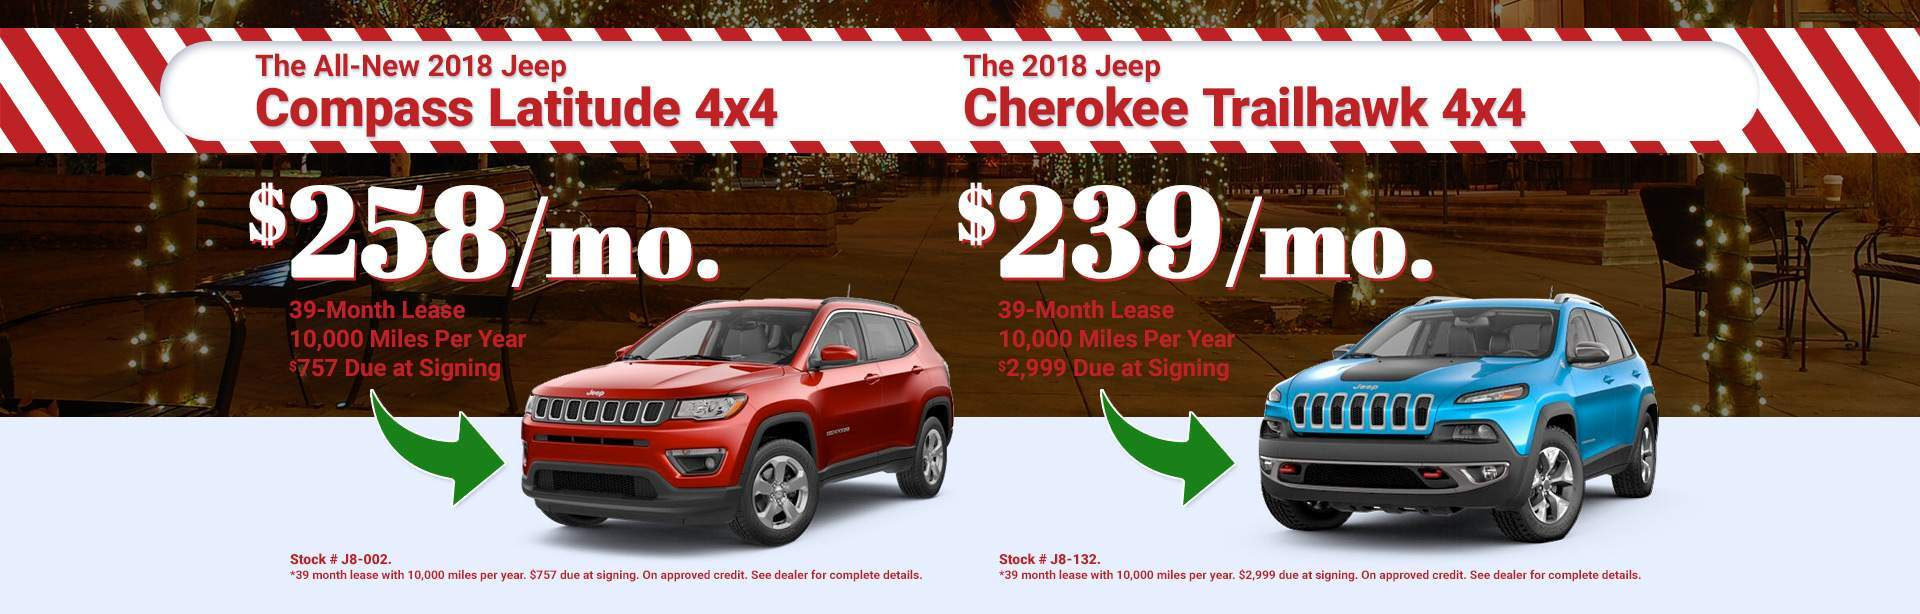 2018 JEEP Compass & Latitude